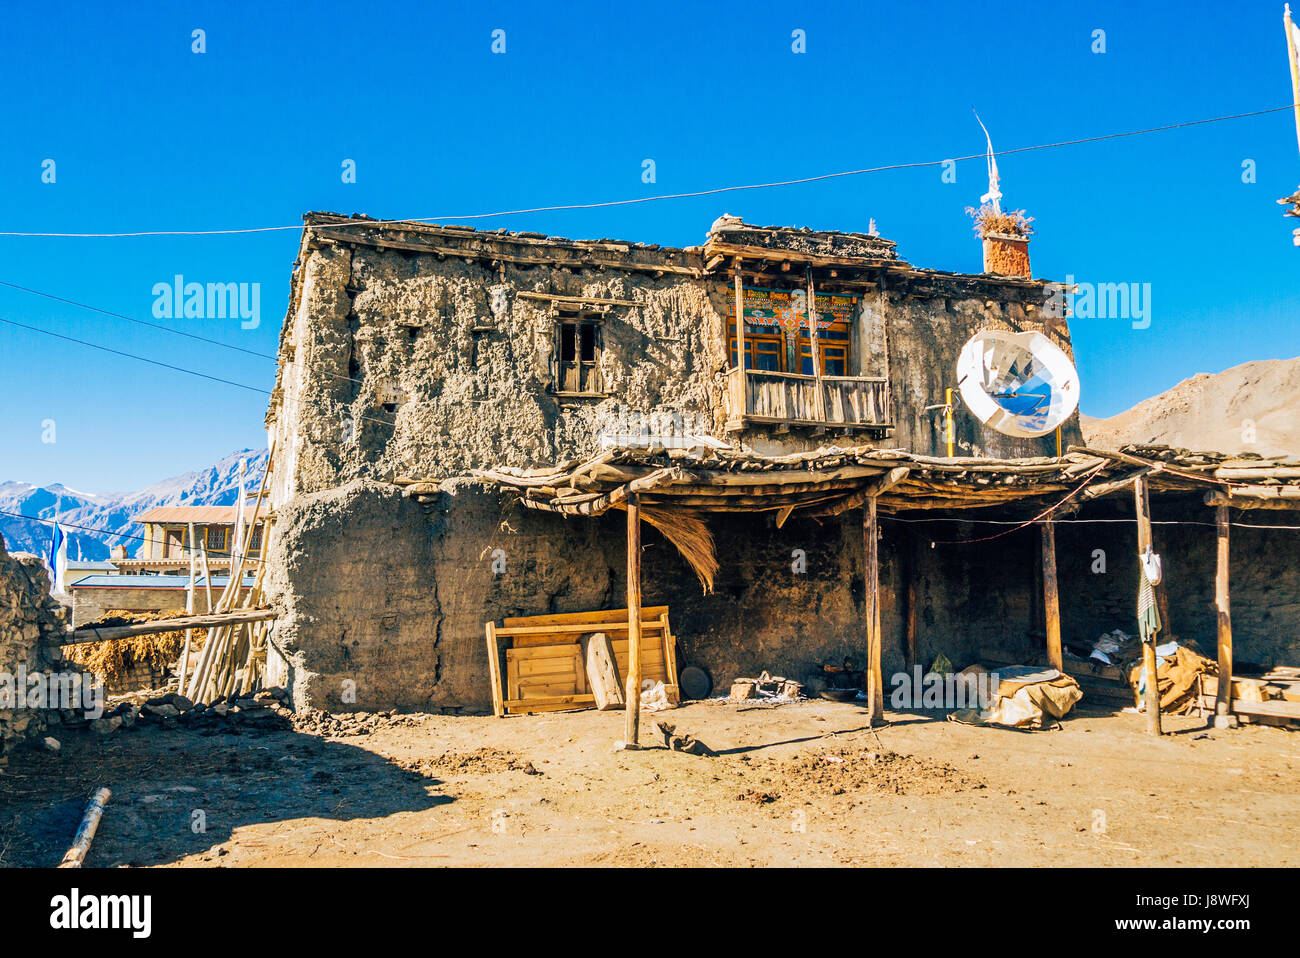 Traditional village house made of mud in the remote Himalayan mountains of Nepal. - Stock Image